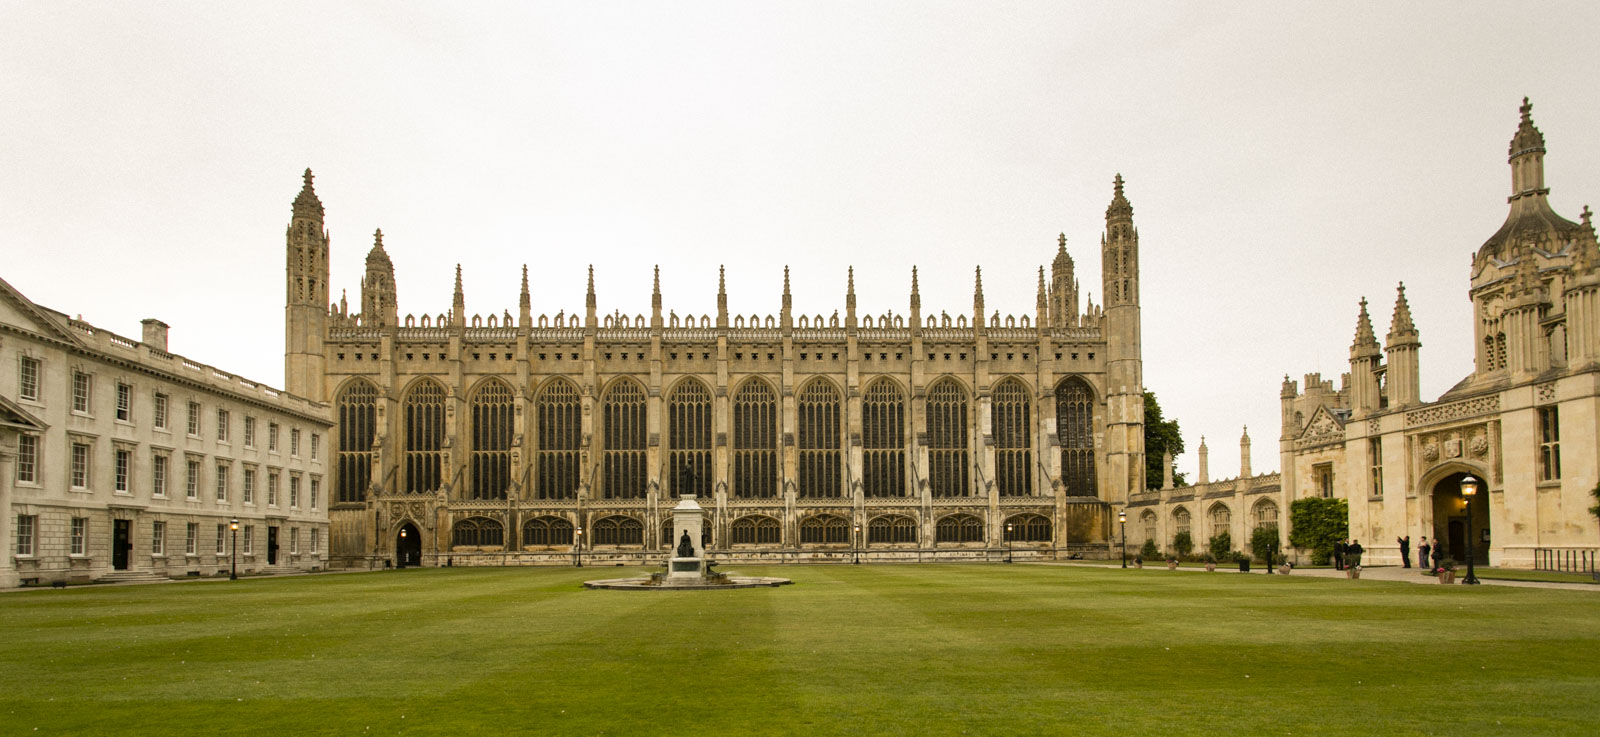 Corporate Event & Party Photography   King's College Cambridge